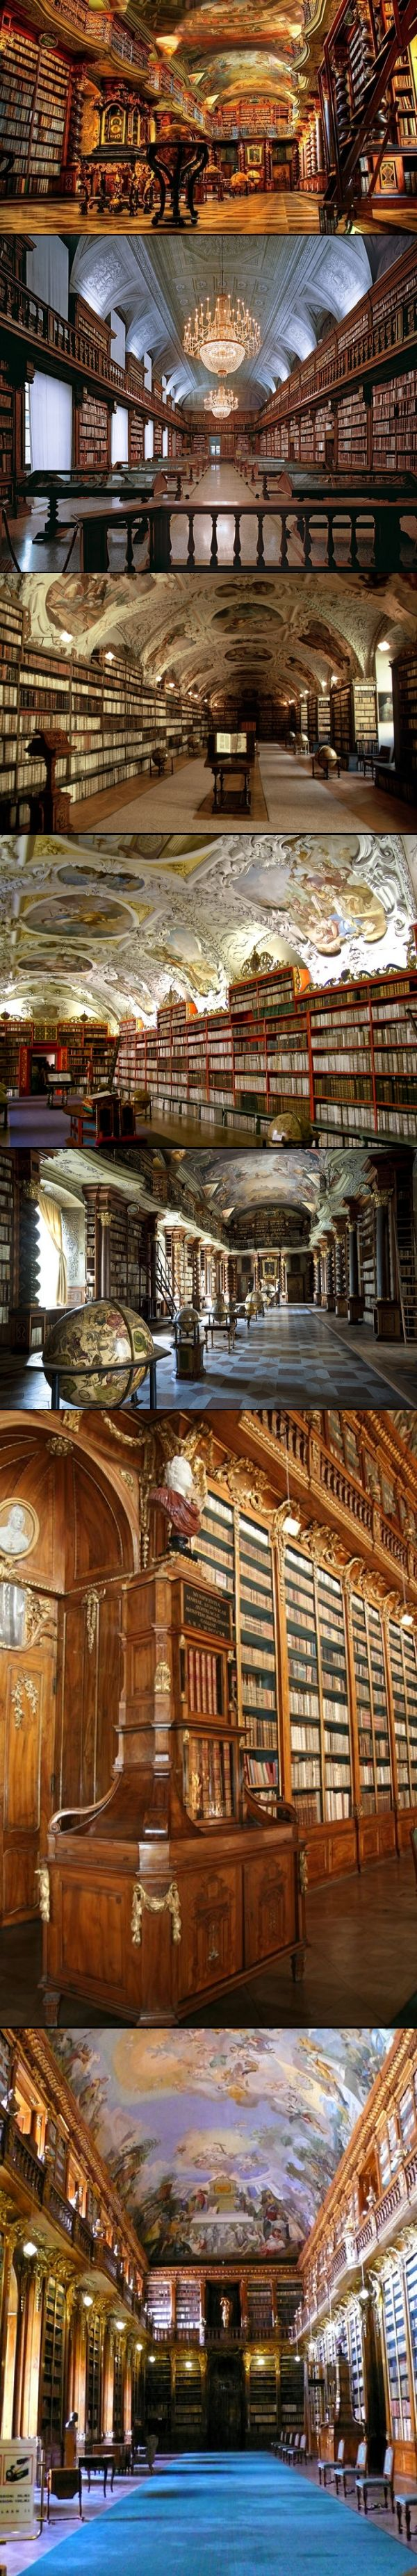 The Clementinum (Klementinum in Czech) is a historic complex of buildings in Prague. Until recently the complex hosted the National, University and Technical libraries, the City Library also being located nearby on Mariánské Náměstí. The Technical library